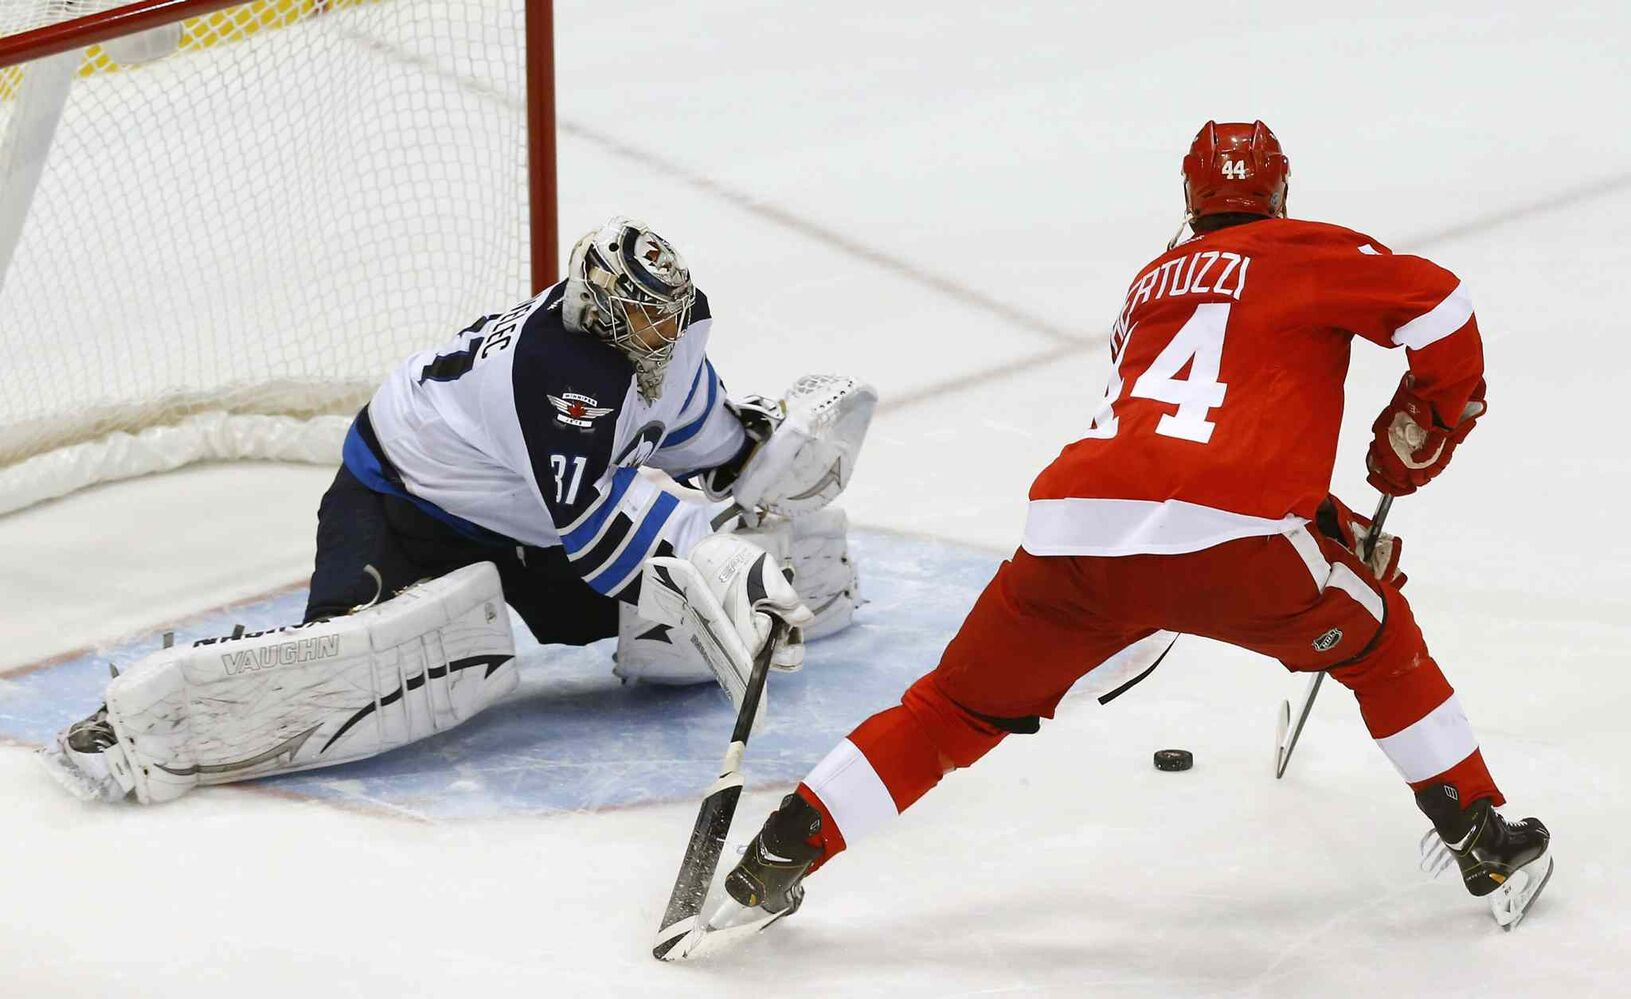 Winnipeg Jets goalie Ondrej Pavelec stops Detroit Red Wings forward Todd Bertuzzi's shootout attempt. (PAUL SANCYA / THE ASSOCIATED PRESS)